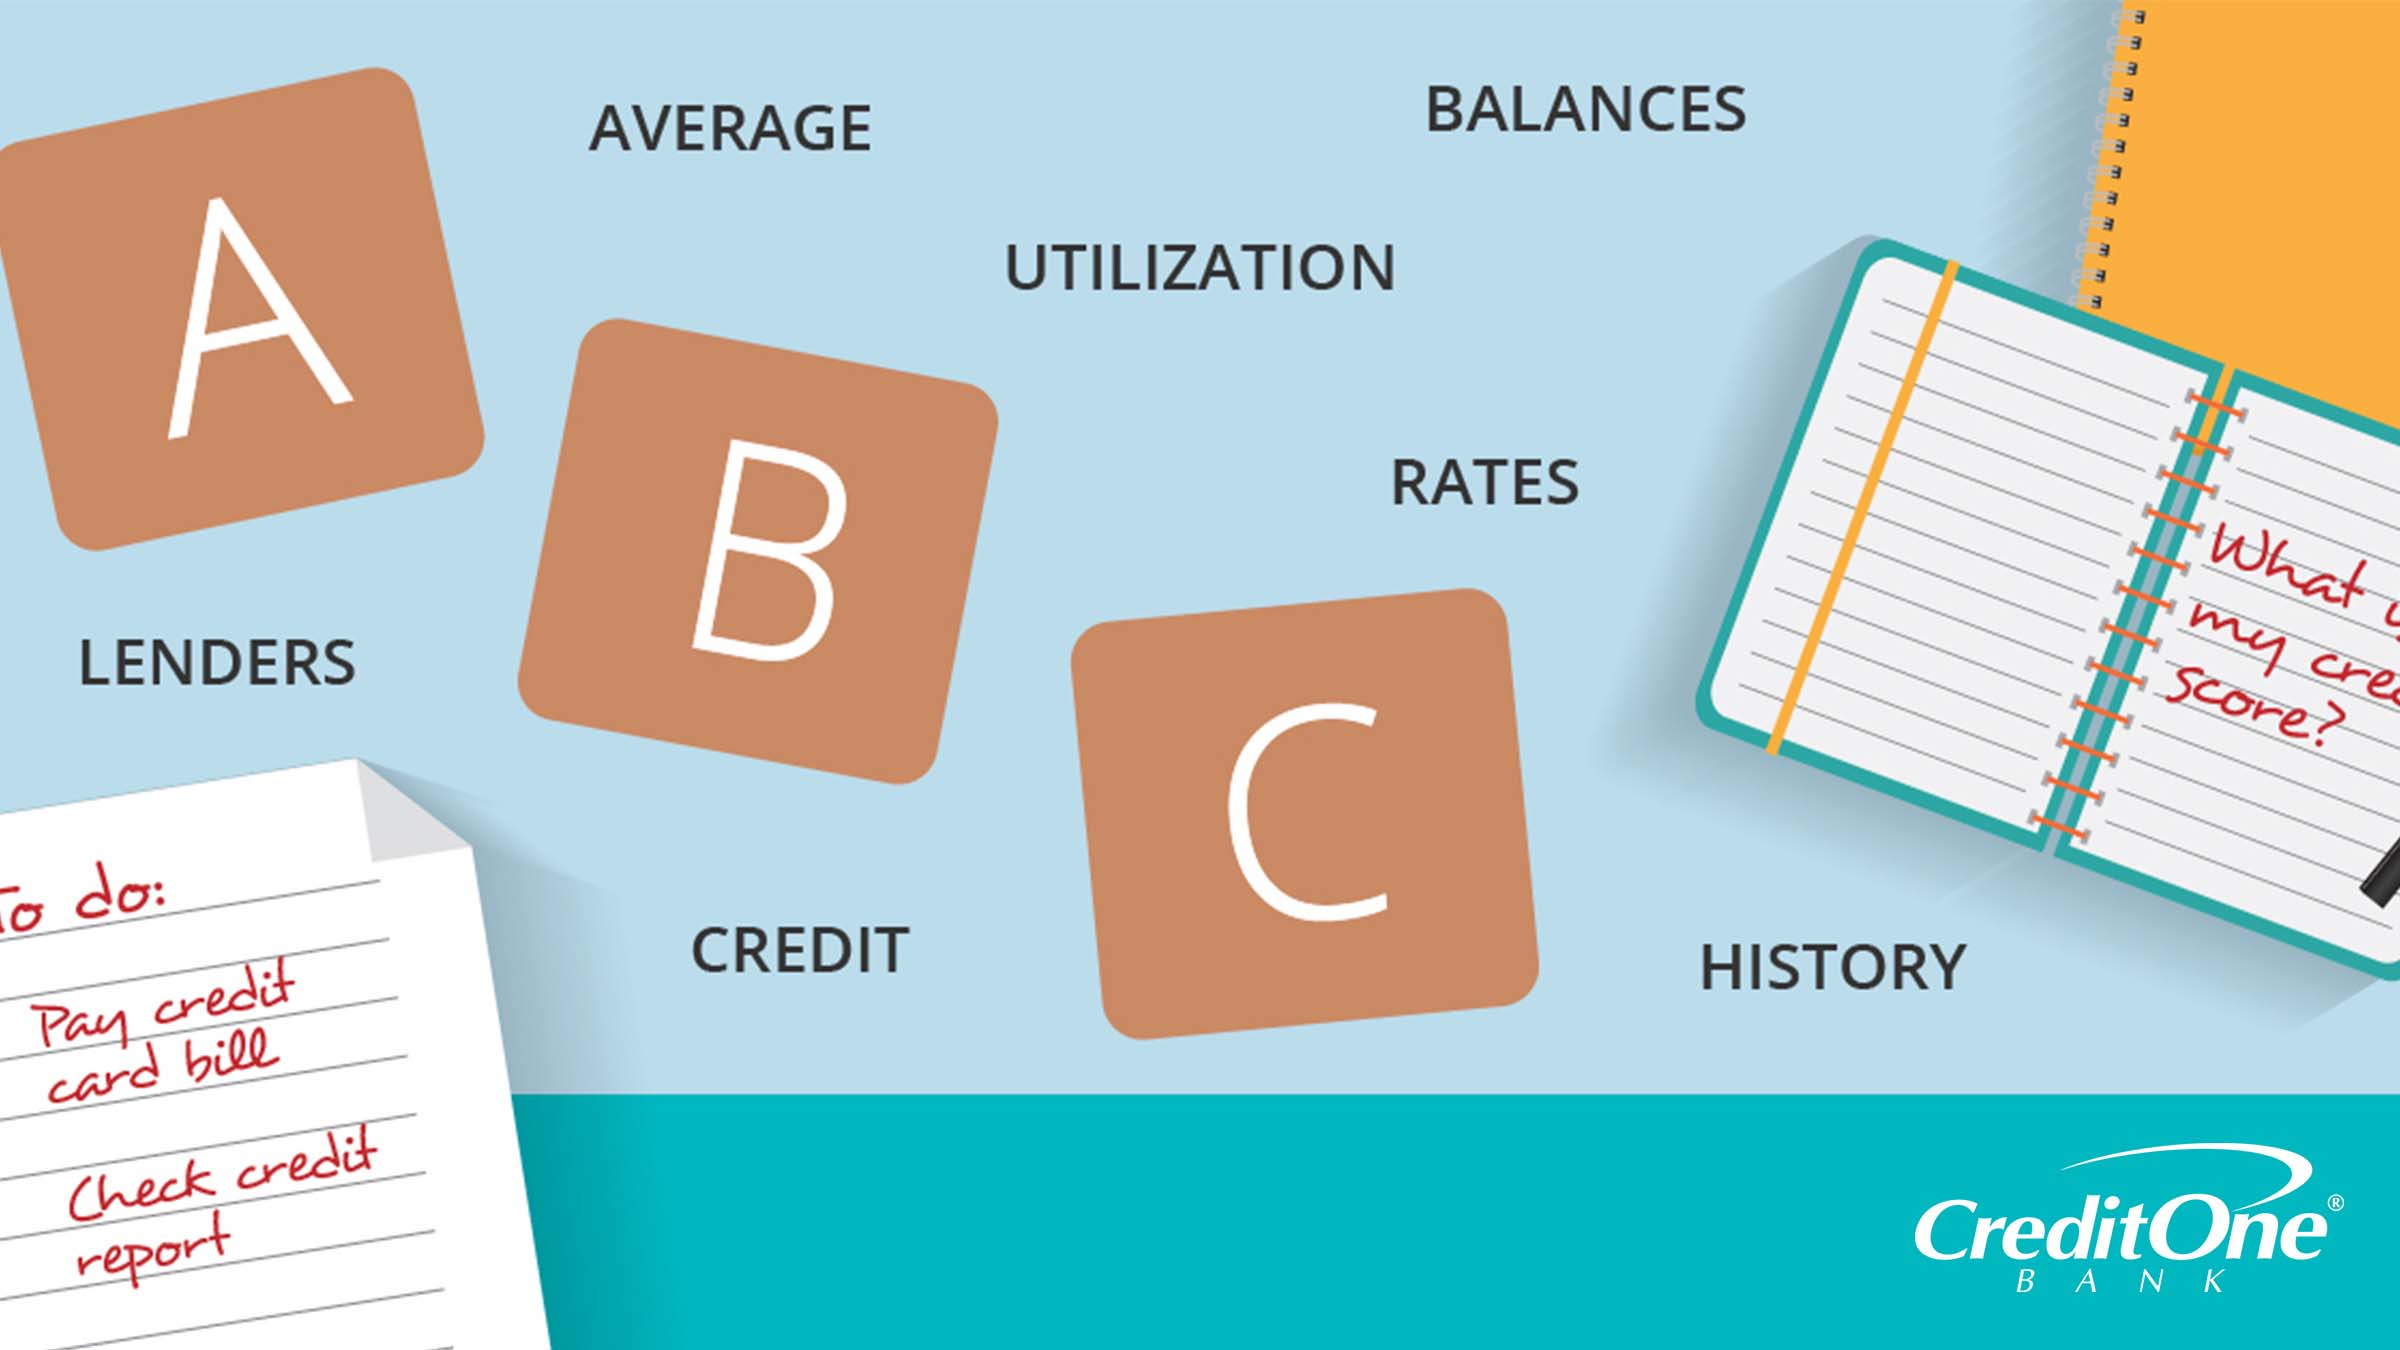 The ABCs of Credit [Infographic]